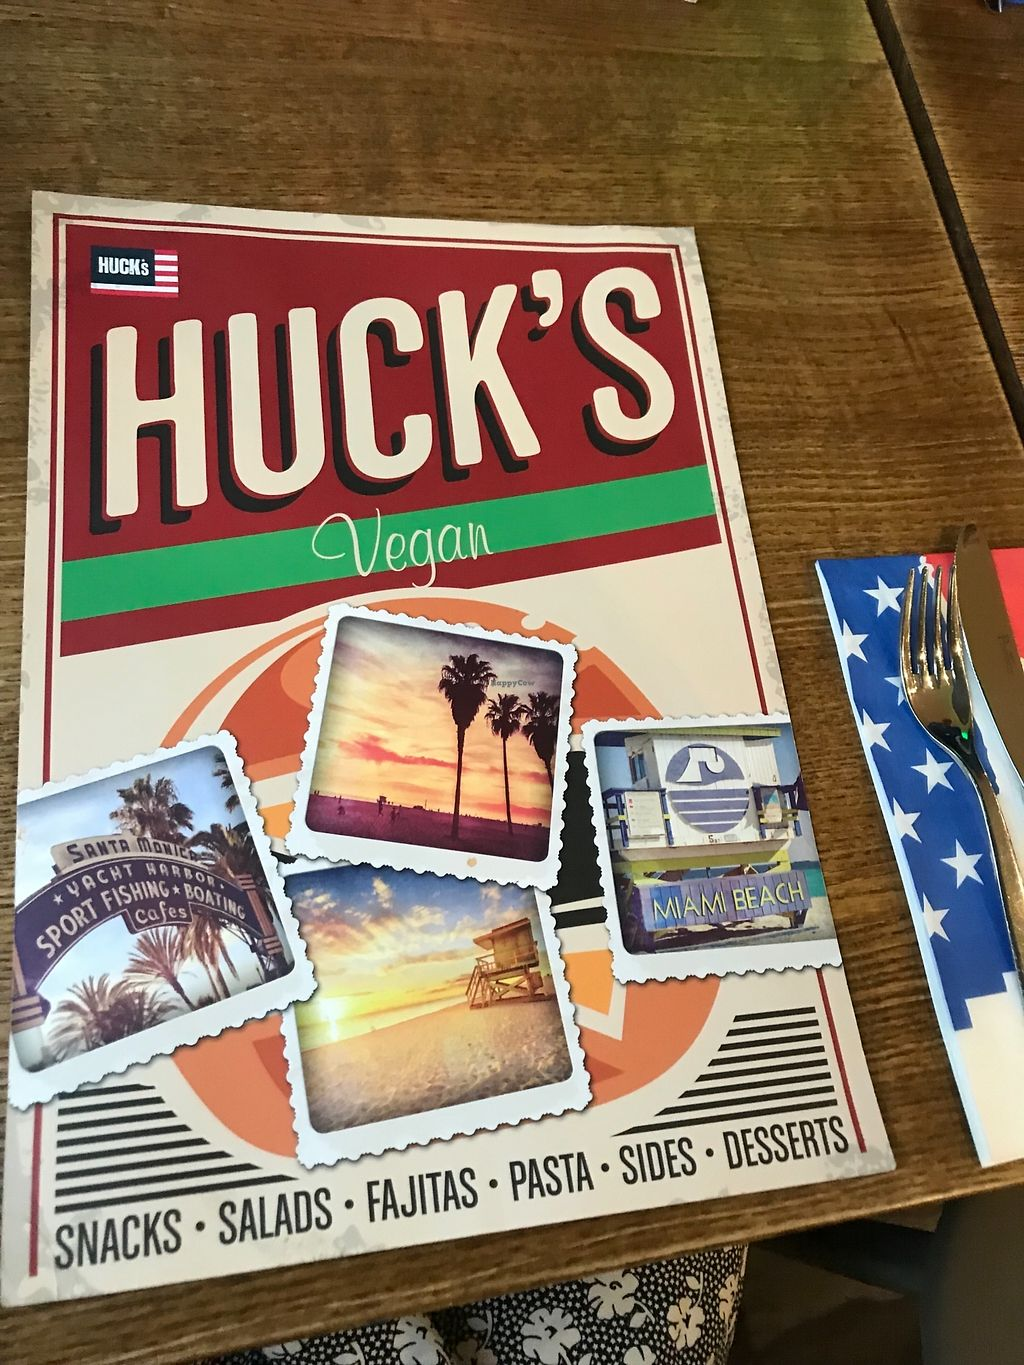 "Photo of Huck's  by <a href=""/members/profile/20daisy00"">20daisy00</a> <br/>Vegan menu <br/> March 29, 2018  - <a href='/contact/abuse/image/116184/377949'>Report</a>"